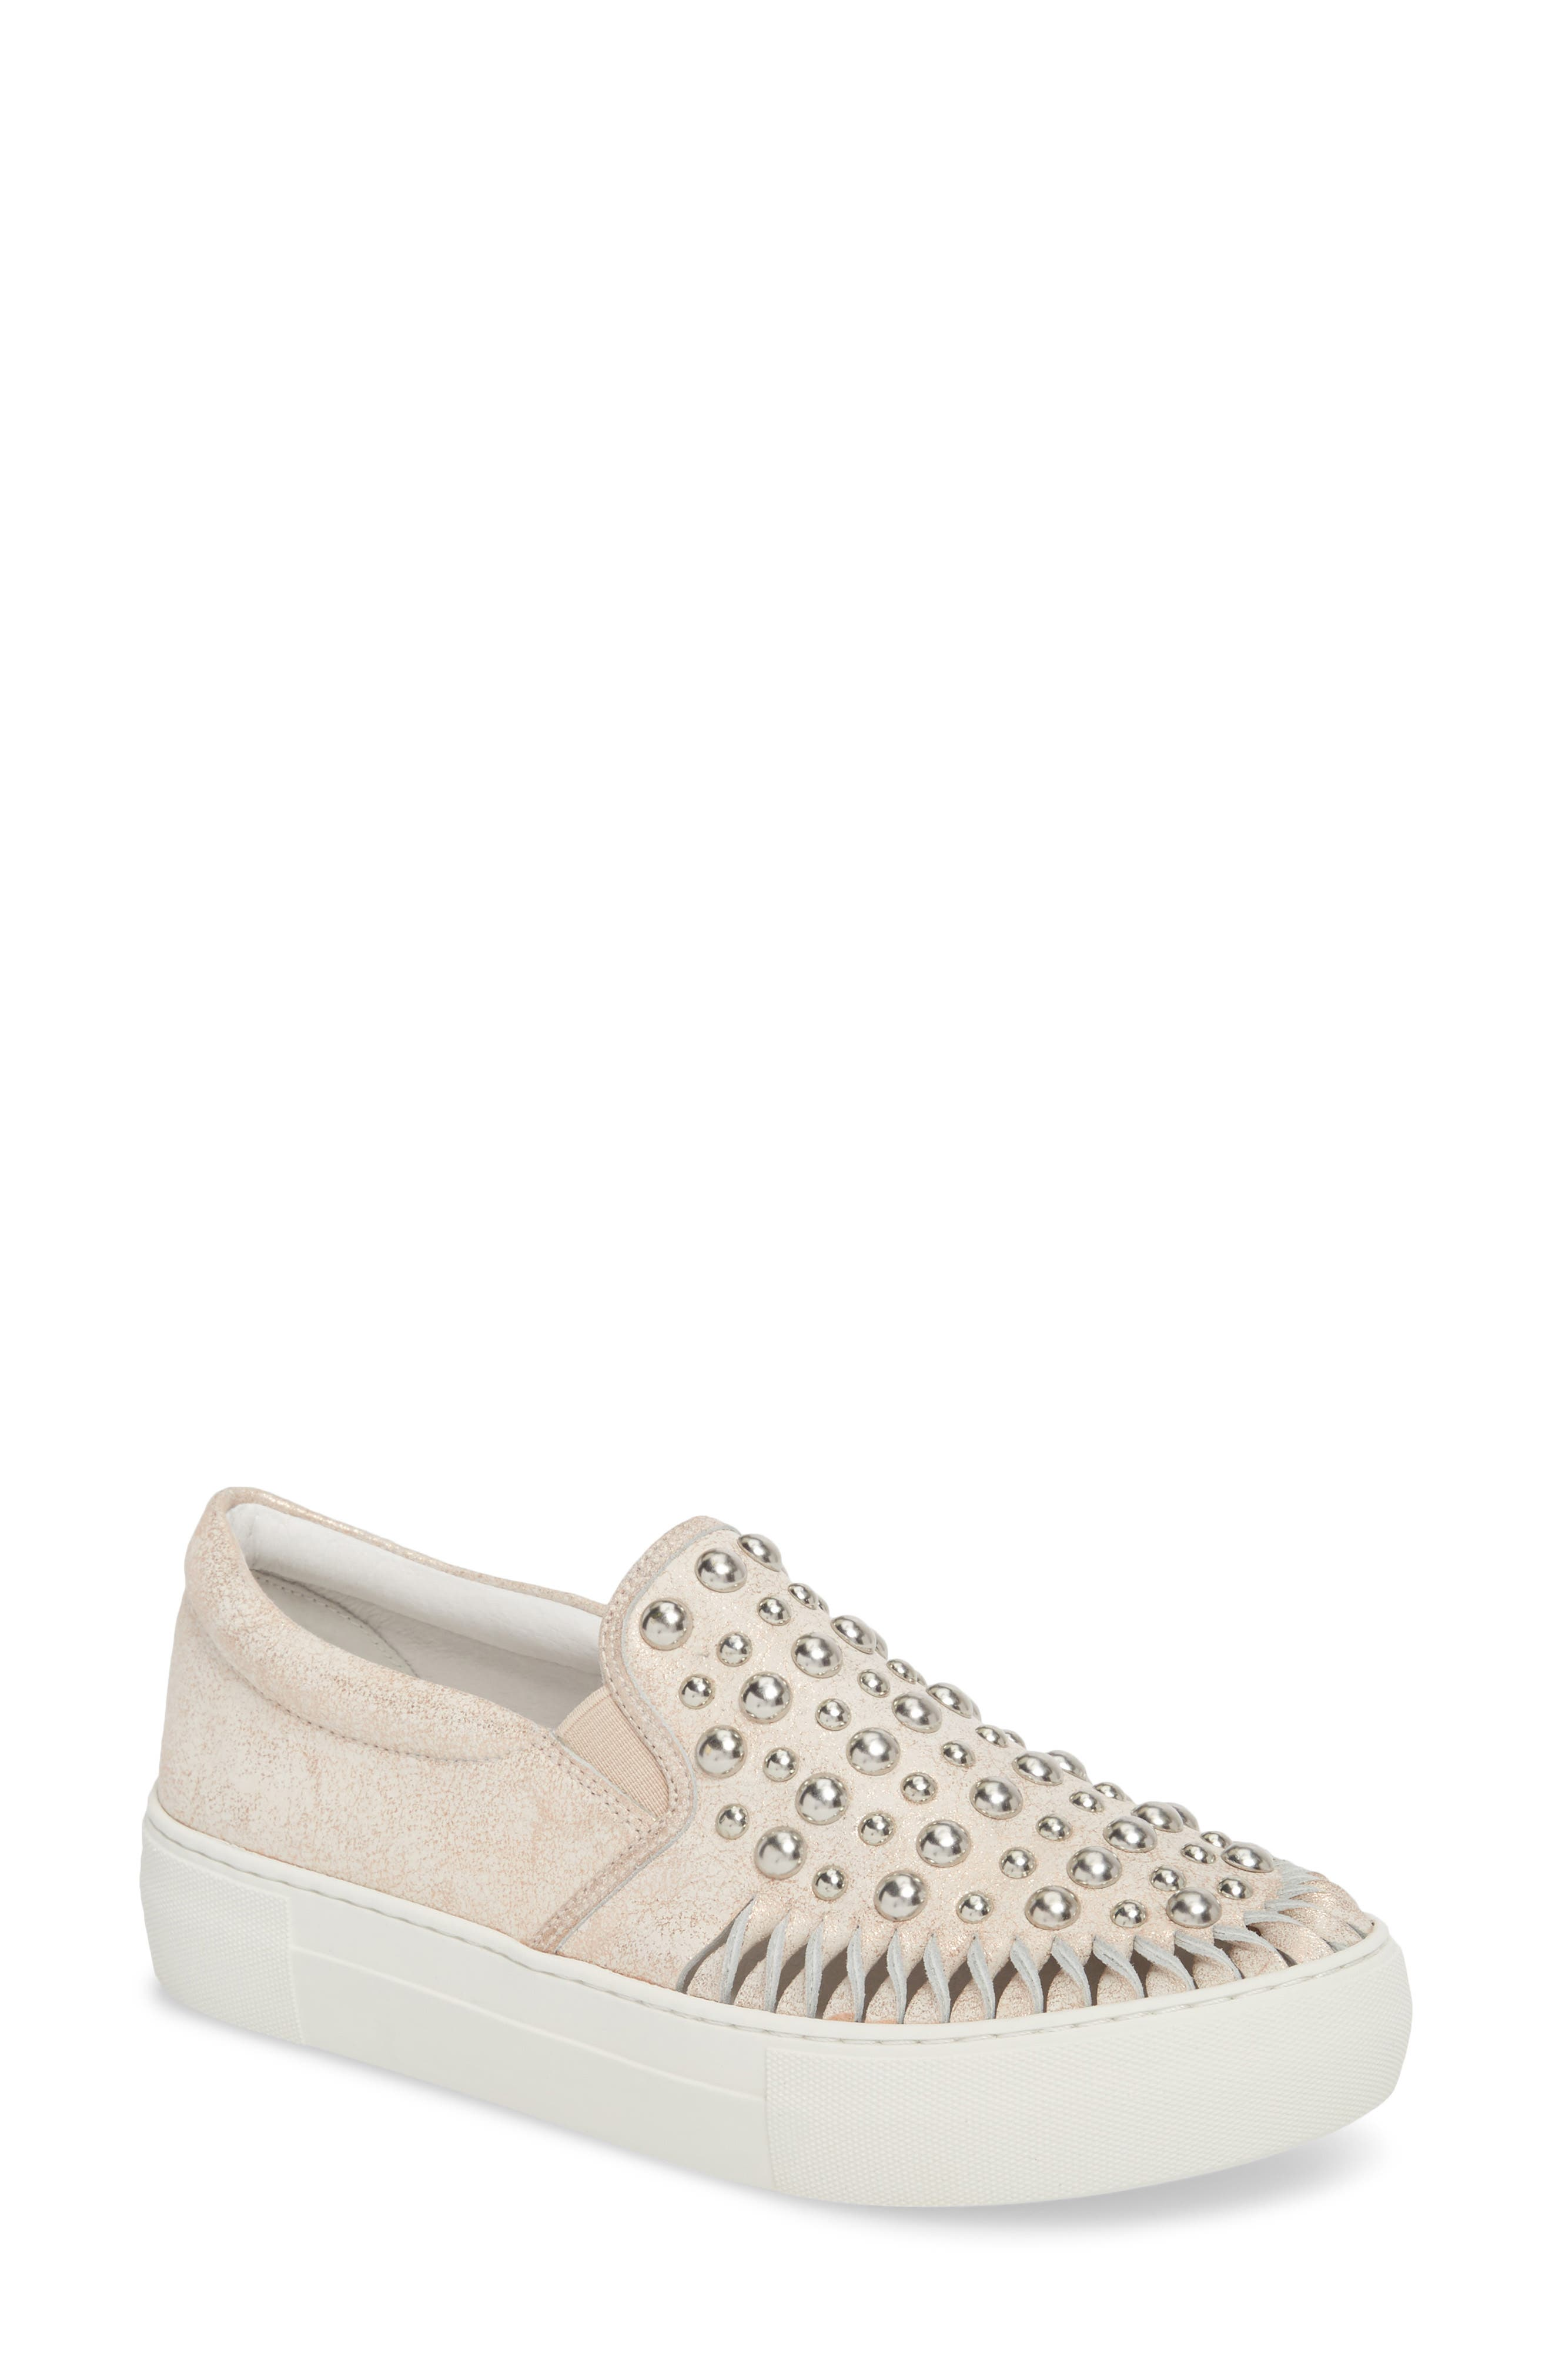 AZT Studded Slip-On Sneaker,                             Main thumbnail 1, color,                             Soft Pink Metallic Leather